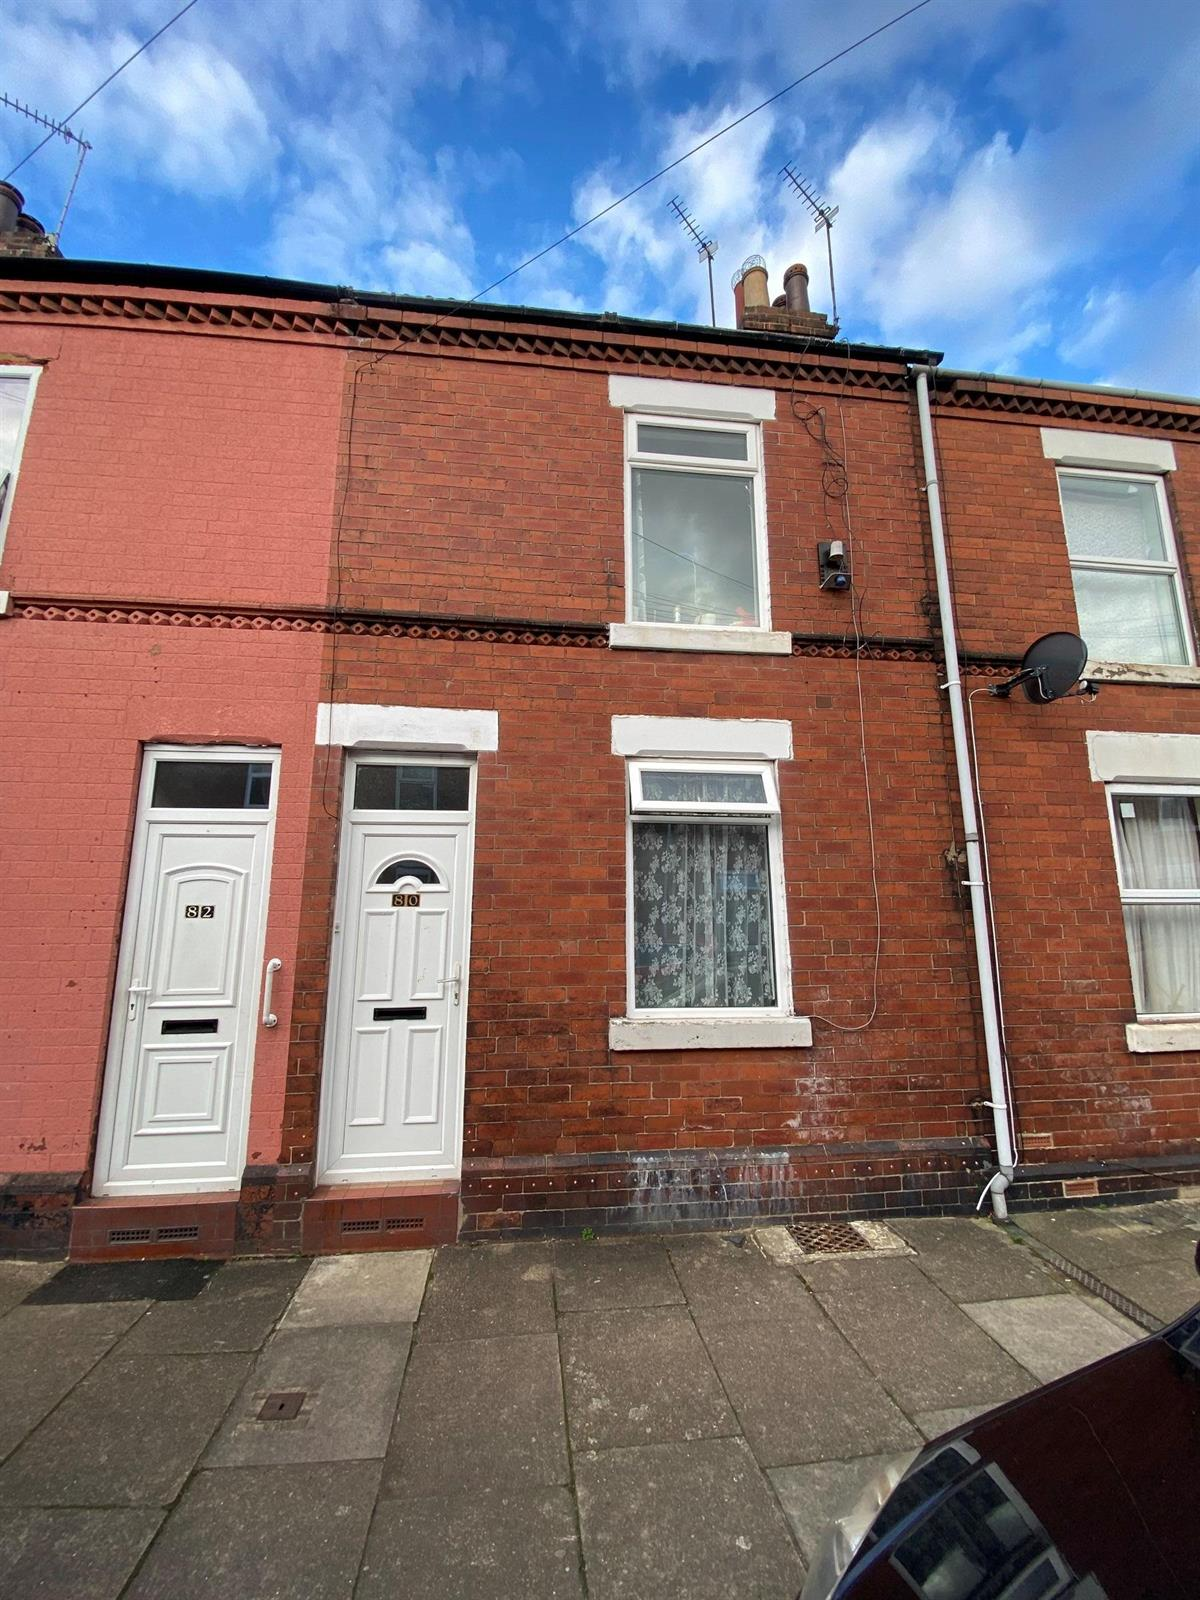 To Let - 2 bedroom Terraced house, Furnival Road, Doncaster - £495 pcm